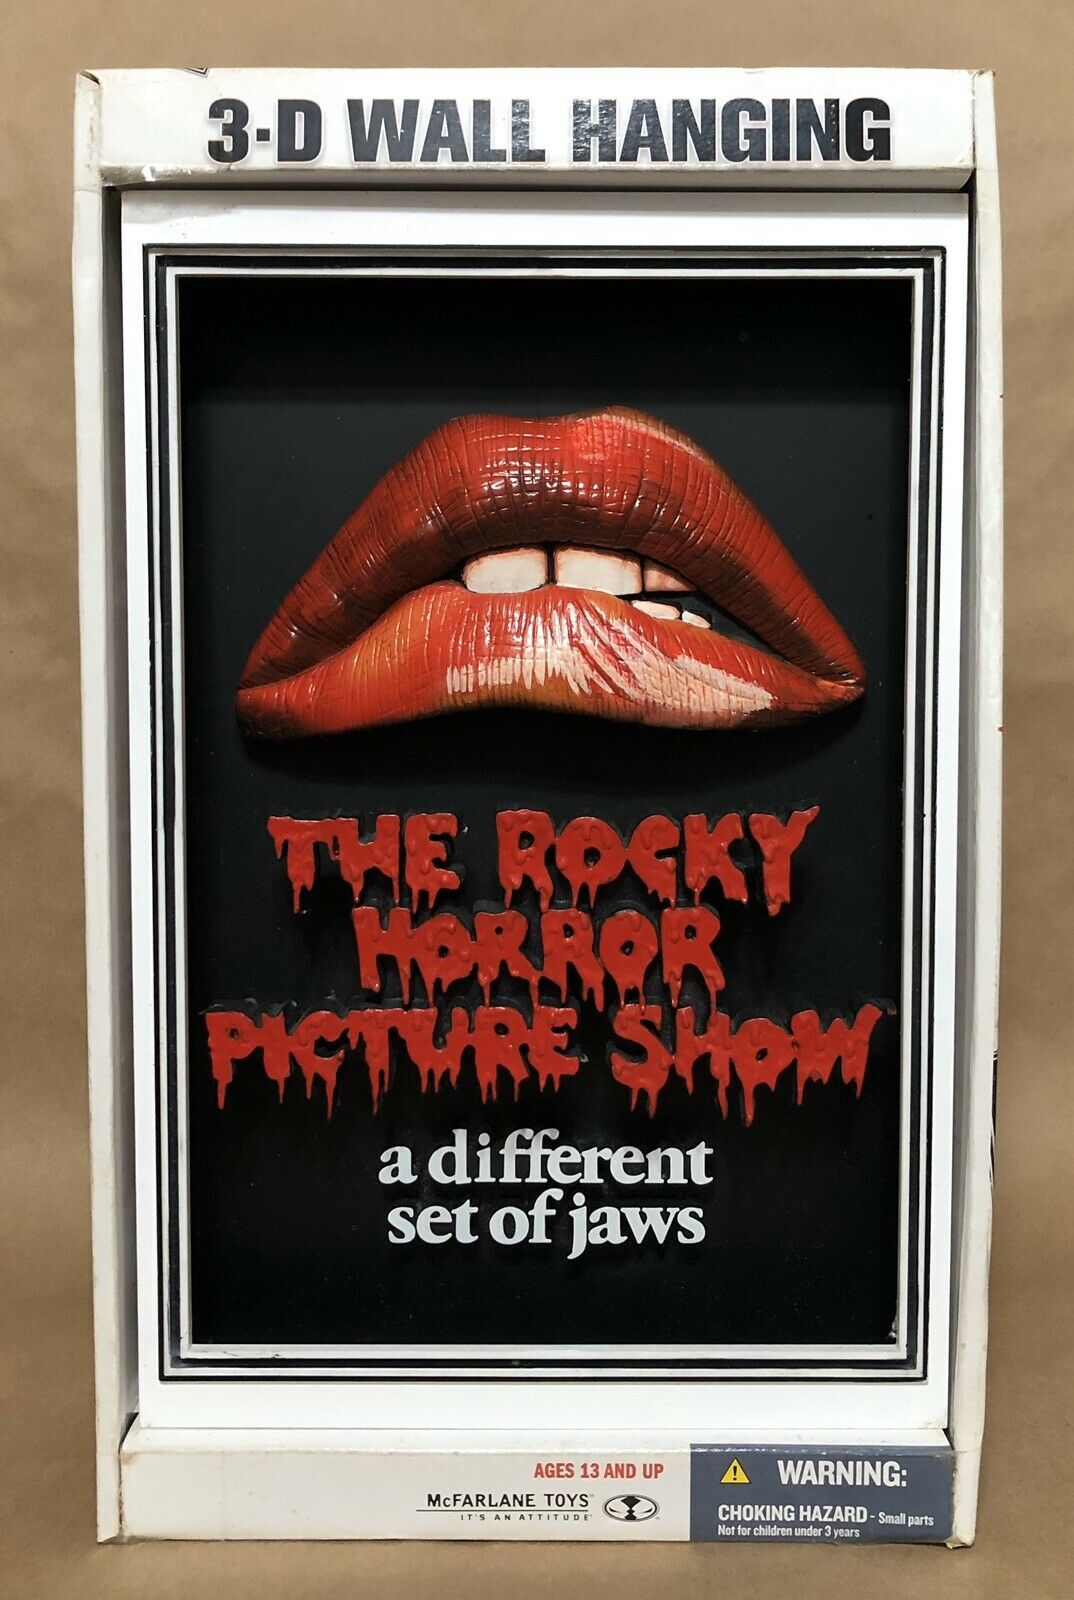 The Rocky Horror Picture Show 3-D Wall Hanging Pop Culture McFarlane MIB